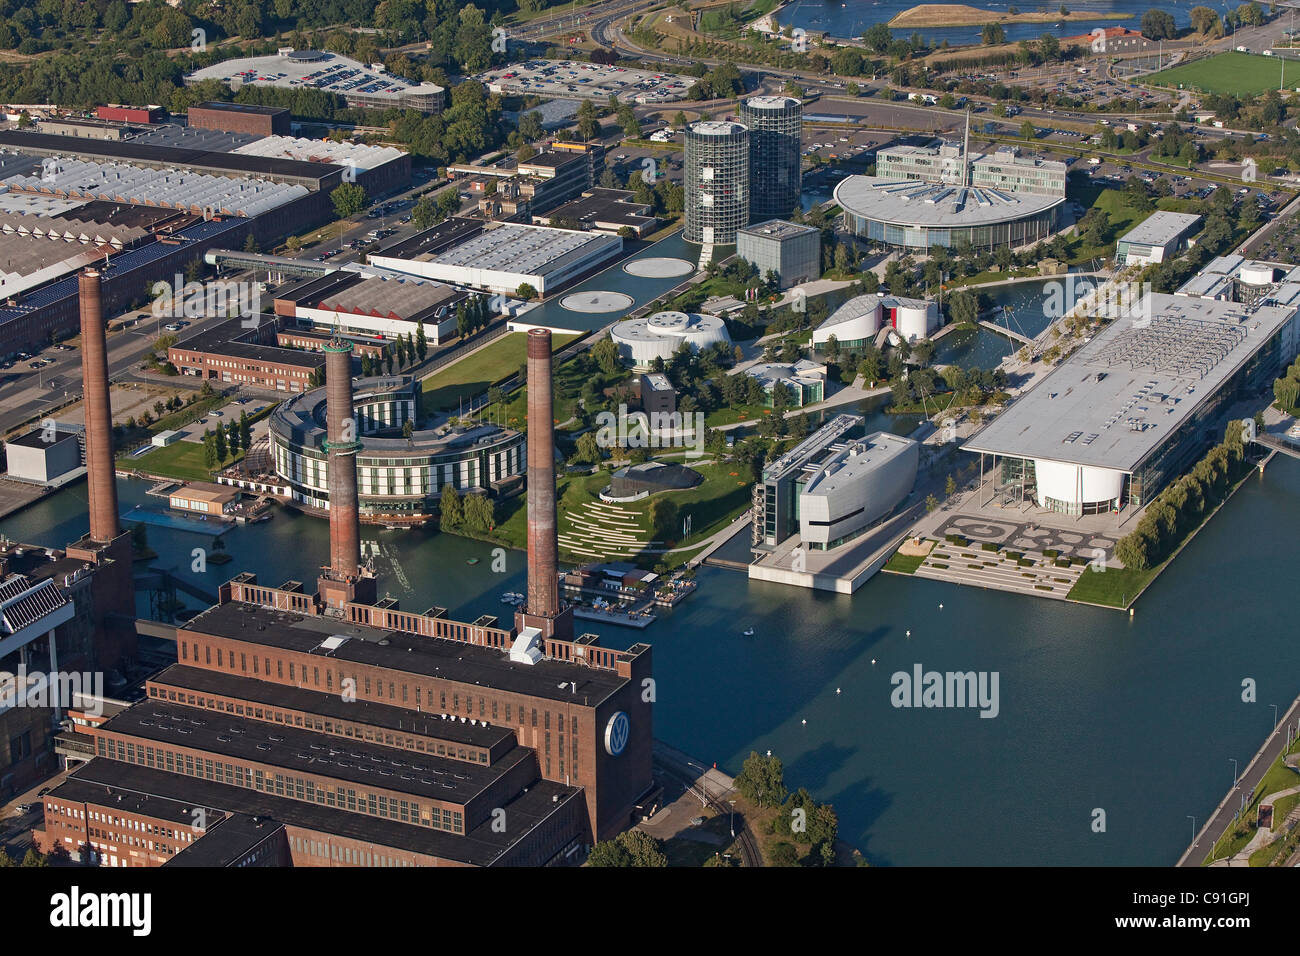 Aerial view of the Volkswagen plant and canal, Autostadt Wolfsburg, Lower Saxony, Germany Stock Photo